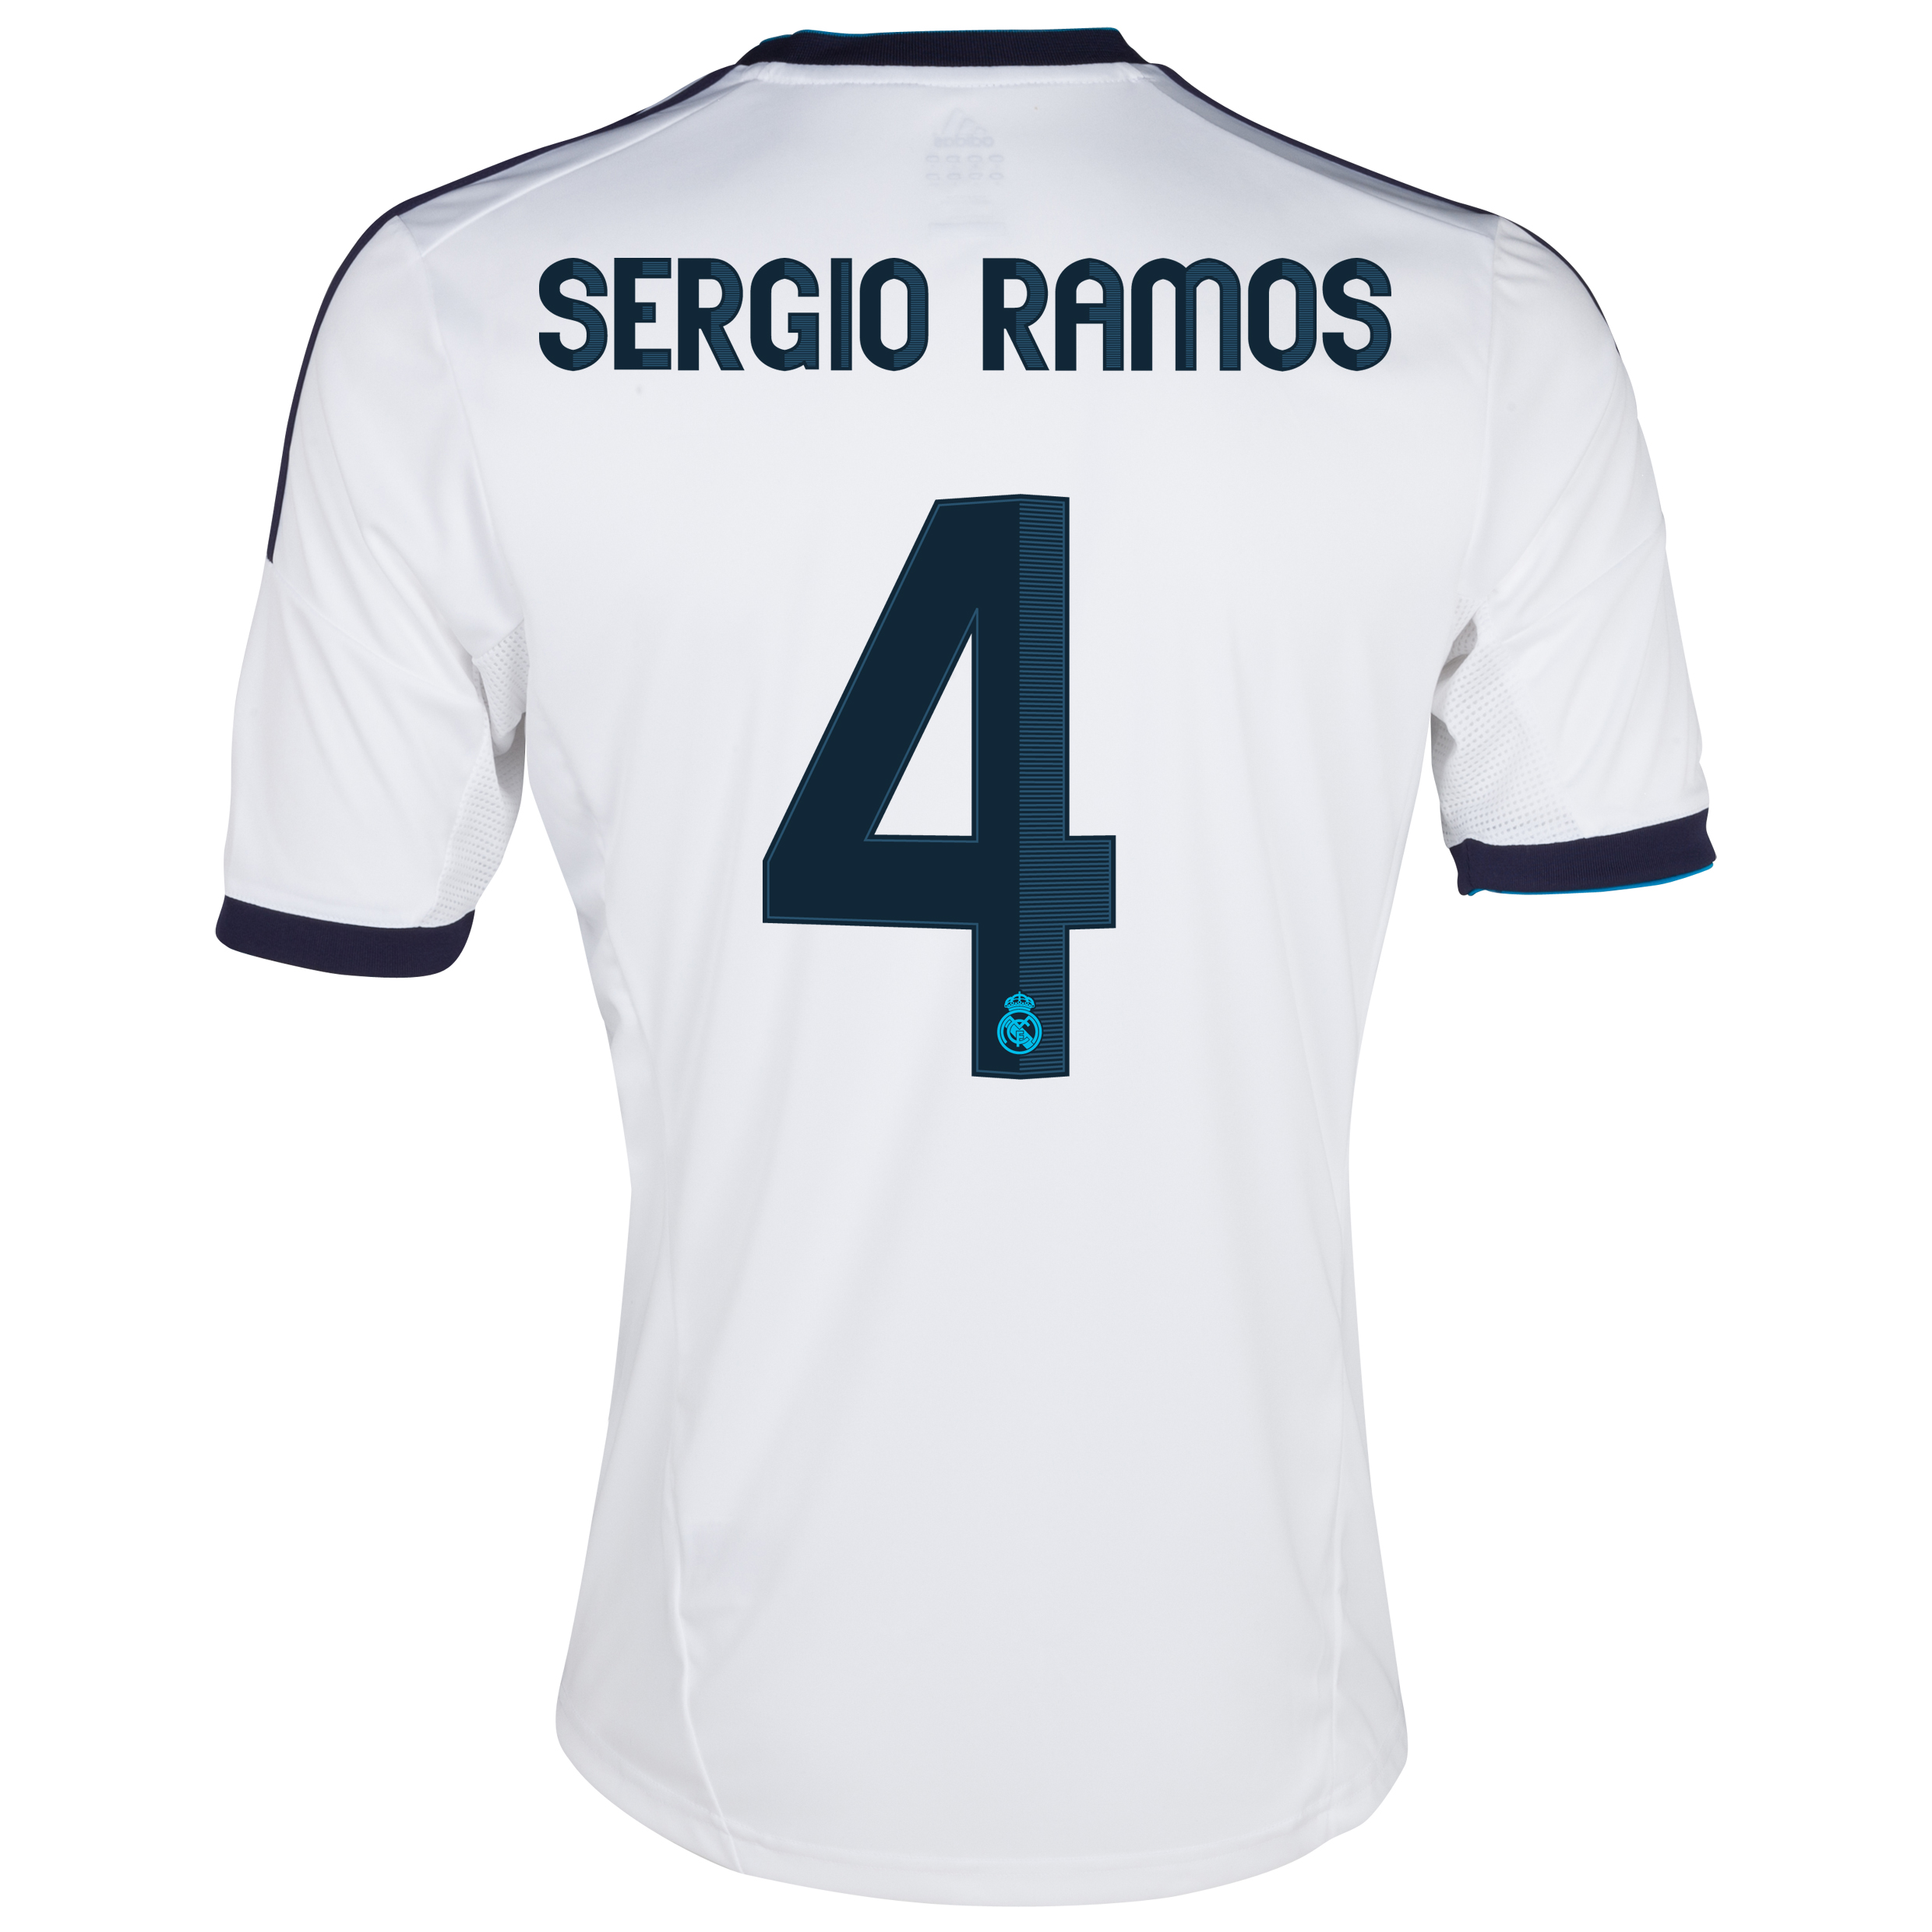 Camiseta 1 equipacin del Real Madrid 2012/13 Cadete con Ramos 4